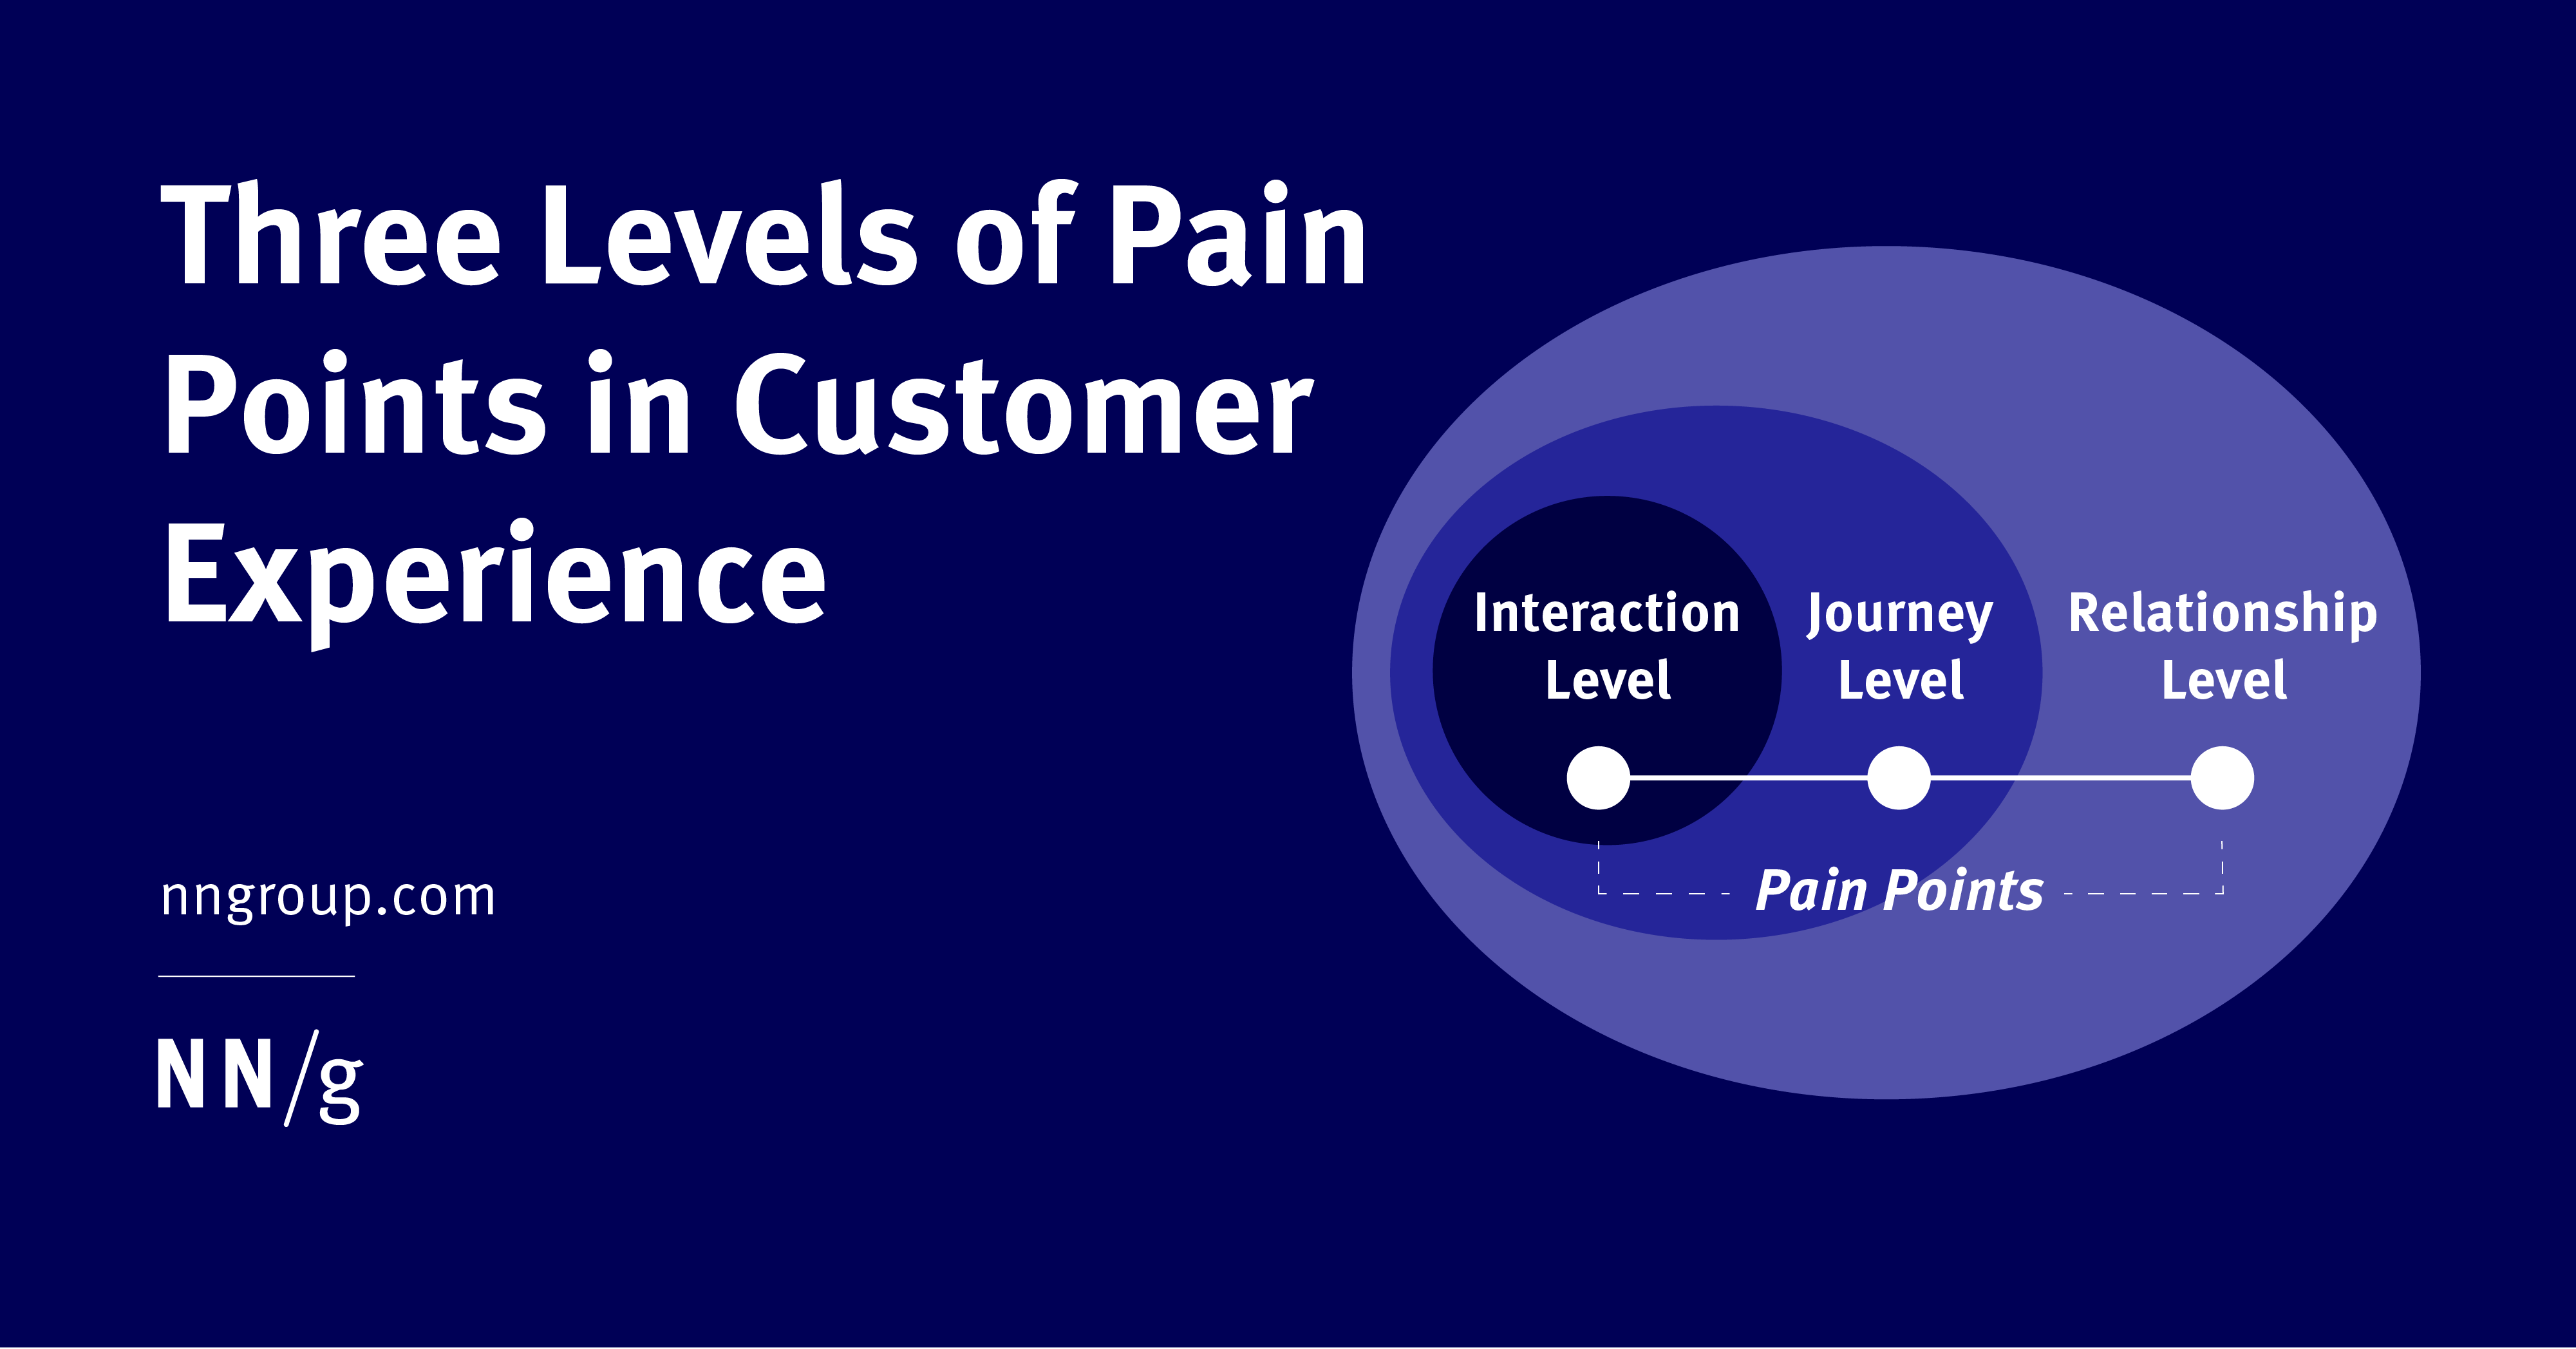 Three Levels of Pain Points in Customer Experience